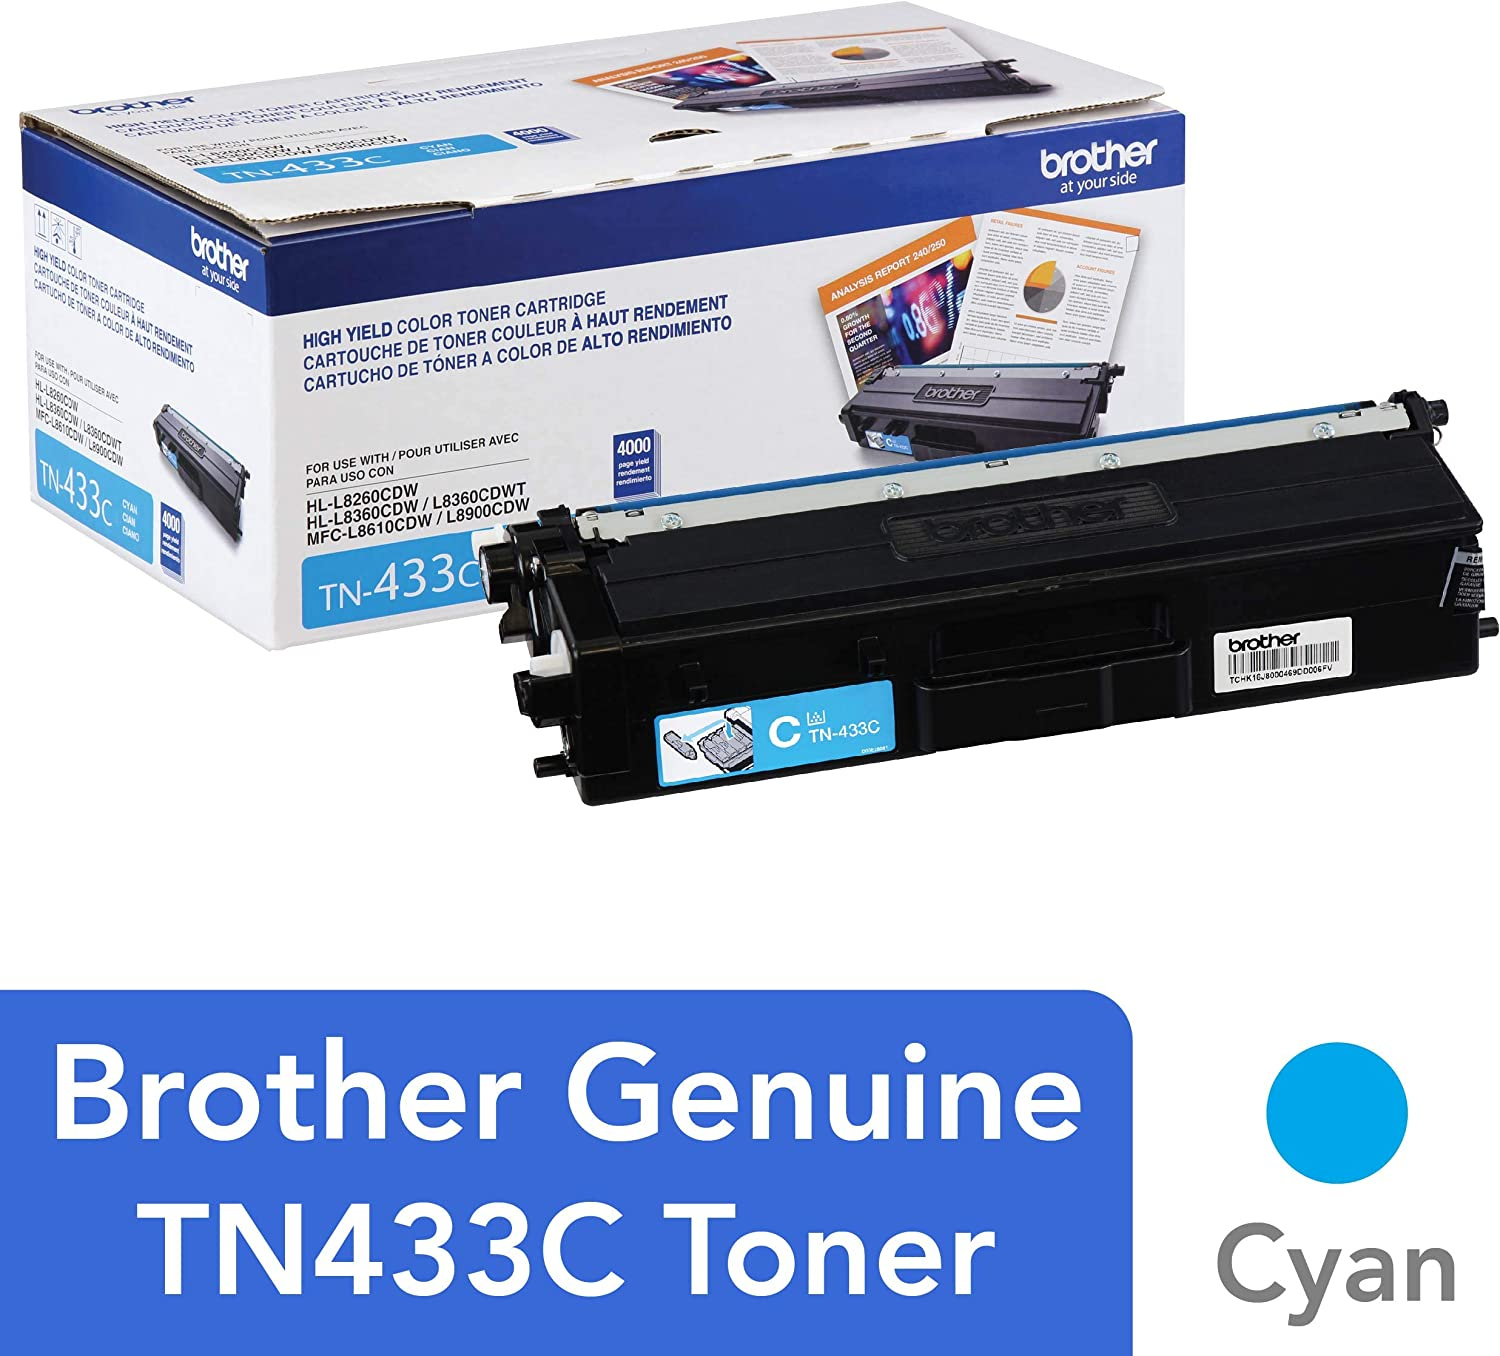 Brother Genuine High Yield Toner Cartridge, TN433C, Replacement Cyan Toner, Page Yield Up To 4,000 Pages, Amazon Dash Replenishment Cartridge, TN433